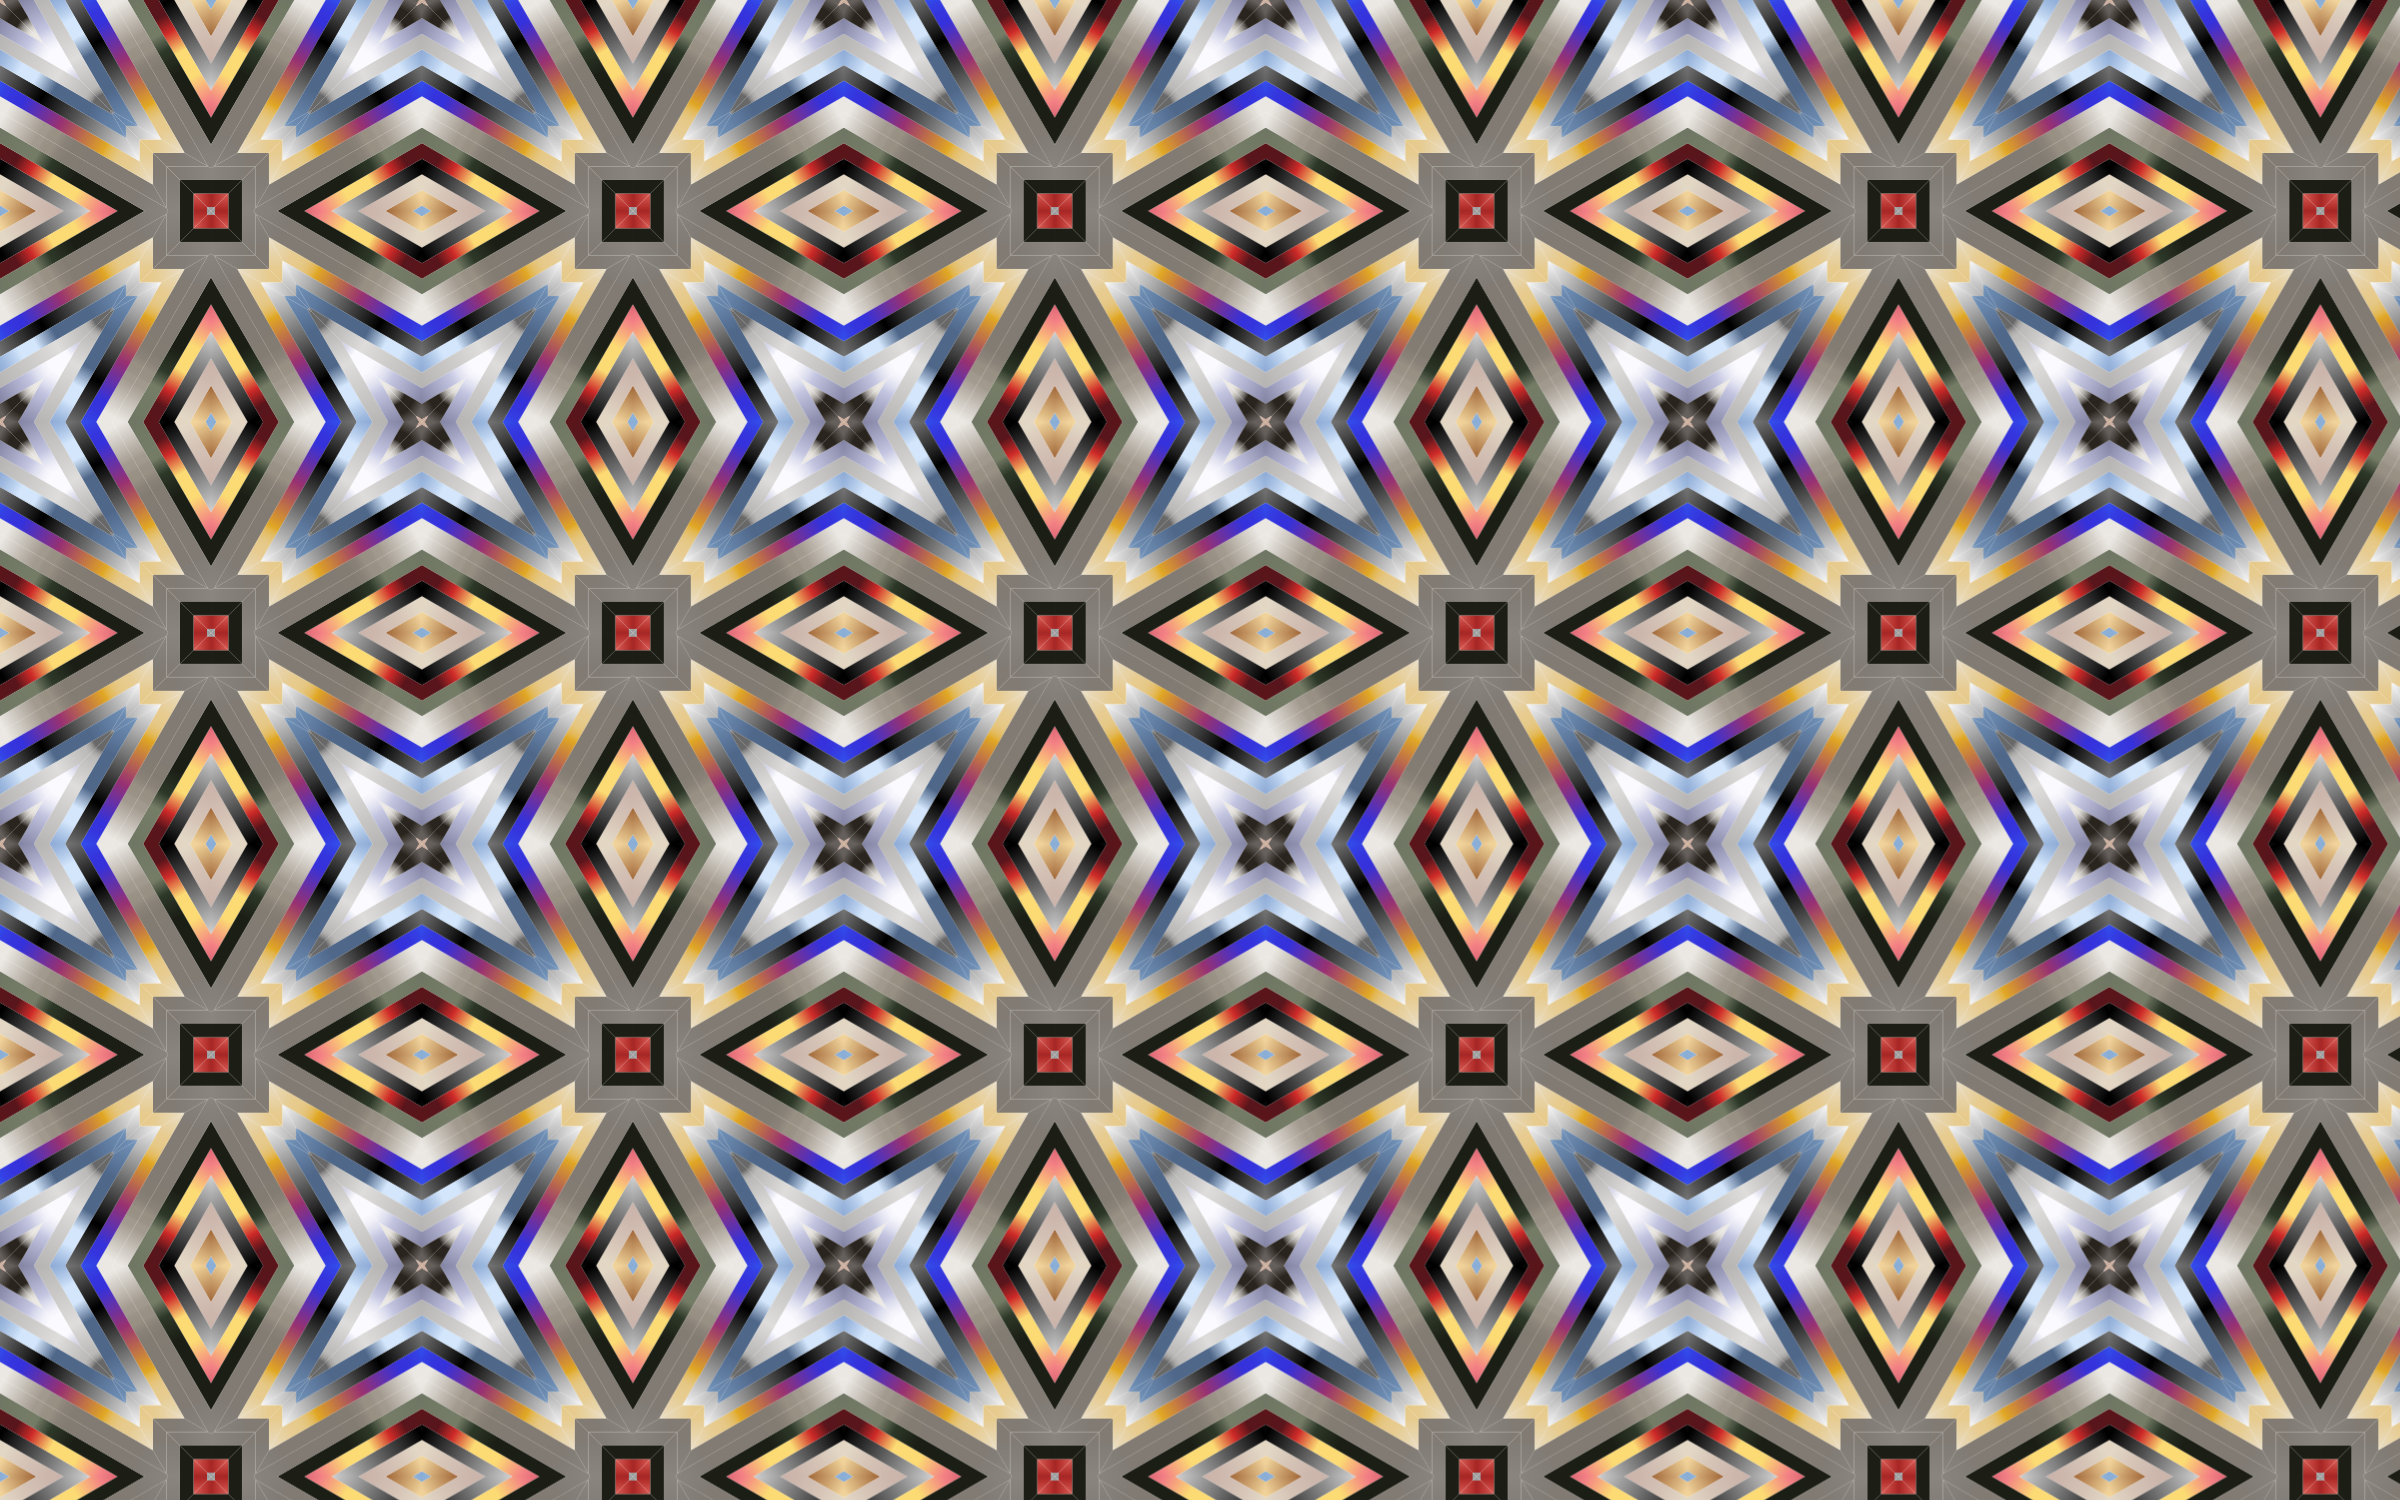 Seamless Pattern DailySketch58 2 by GDJ